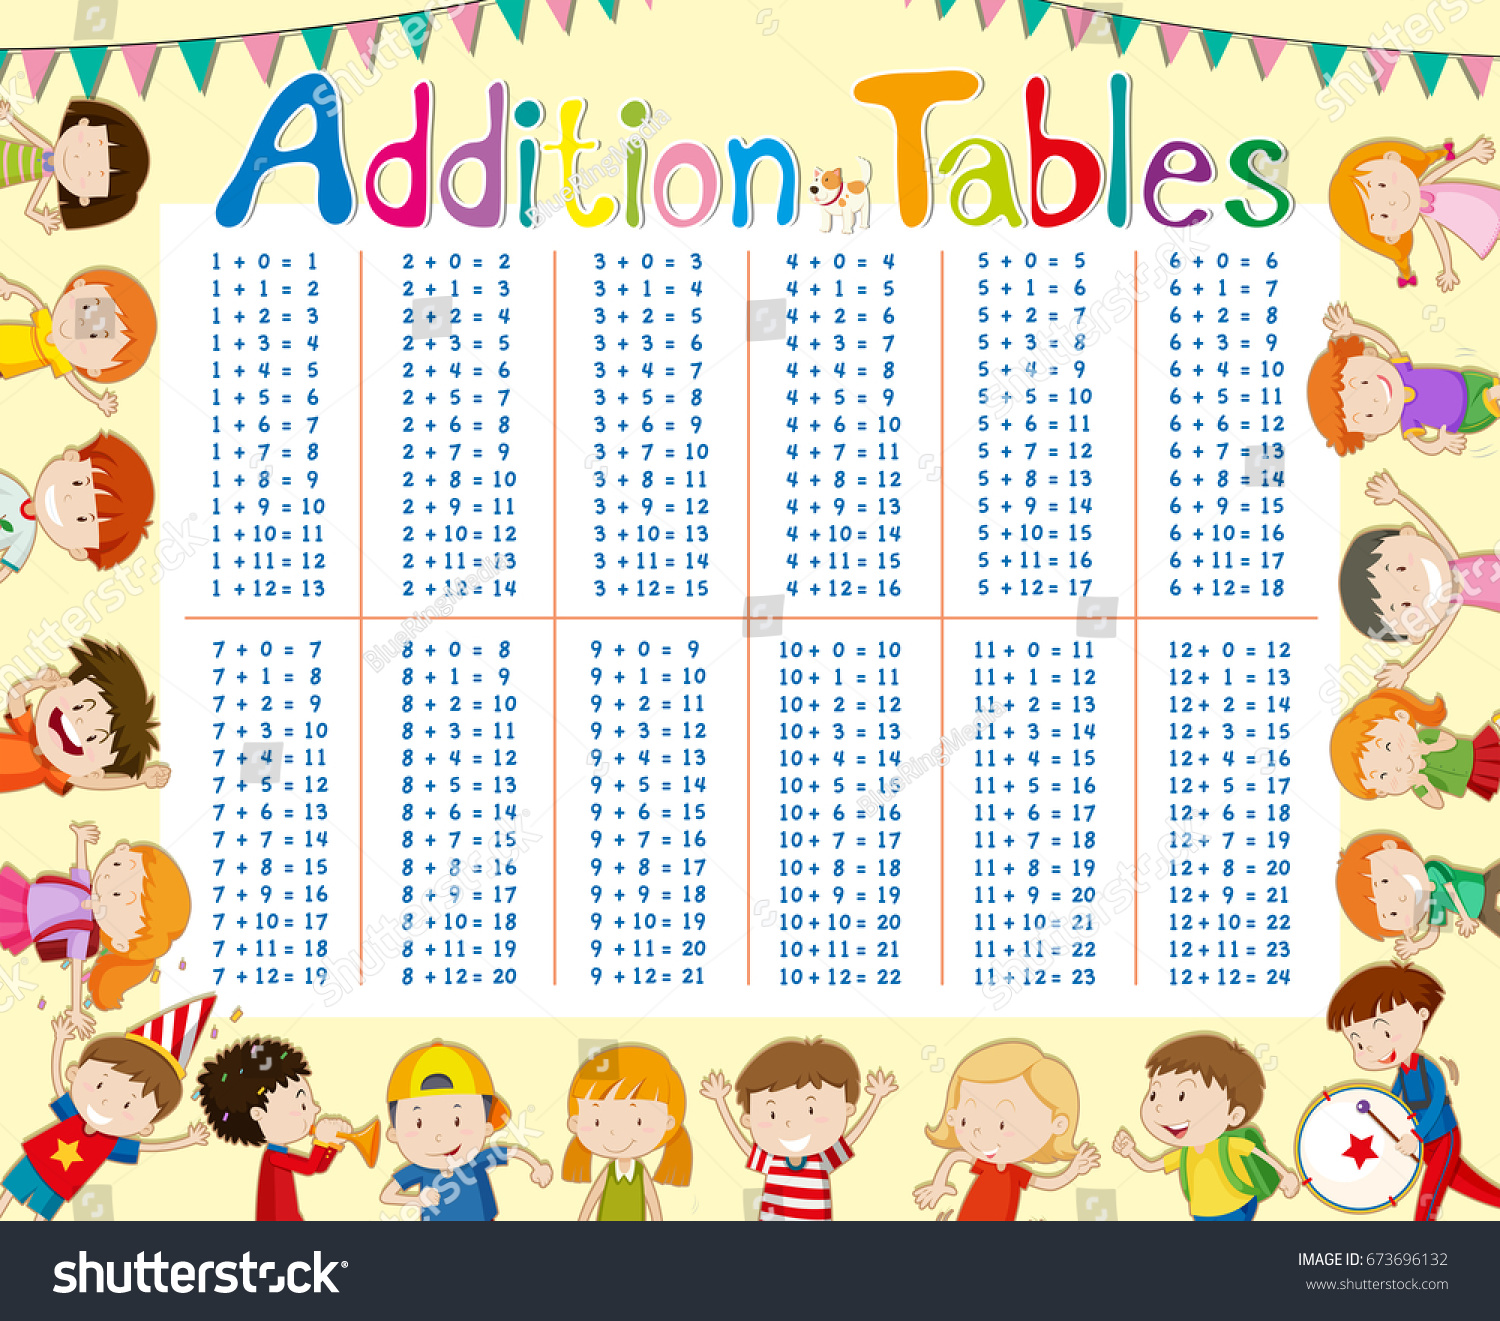 addition tables chart kids background illustration stock vector